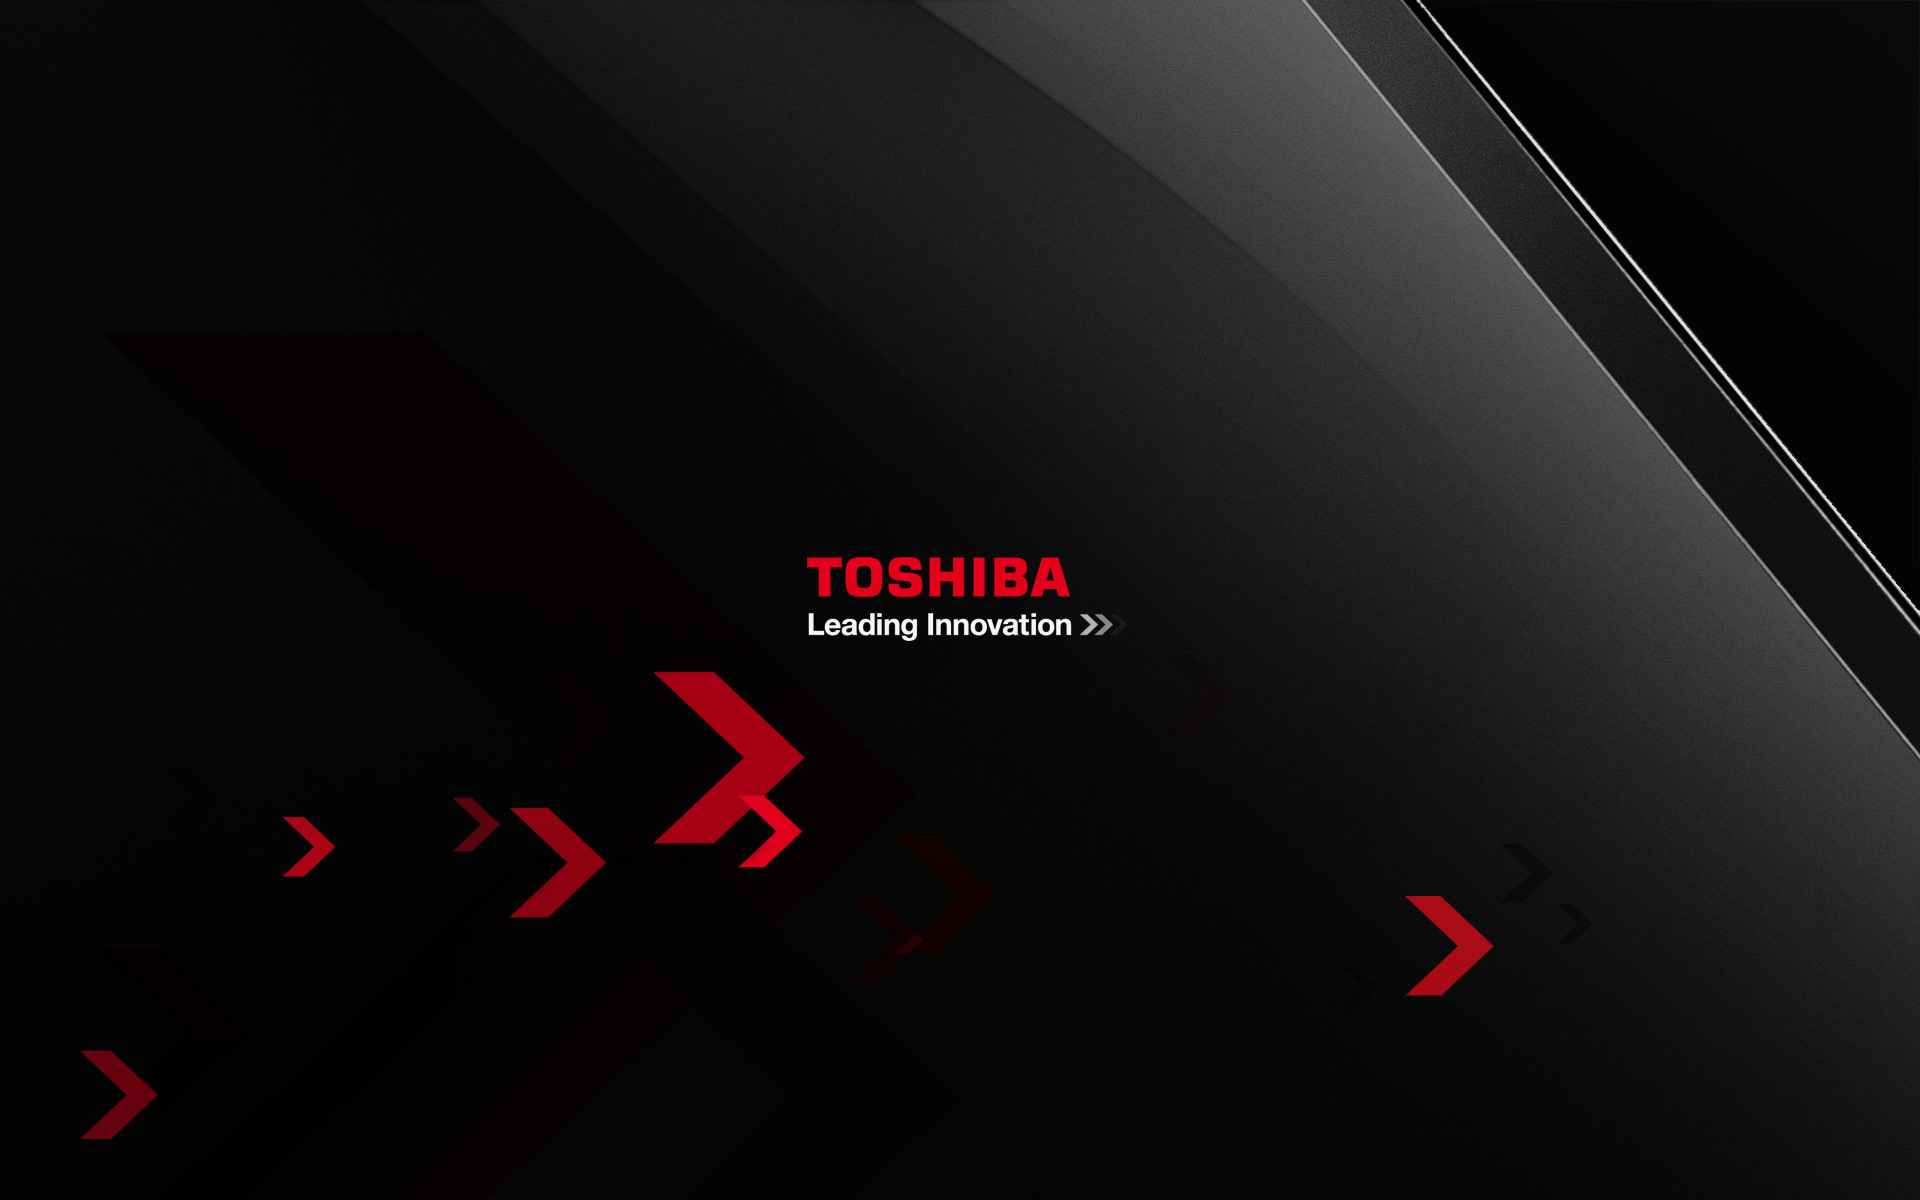 Toshiba no matter what guarantee